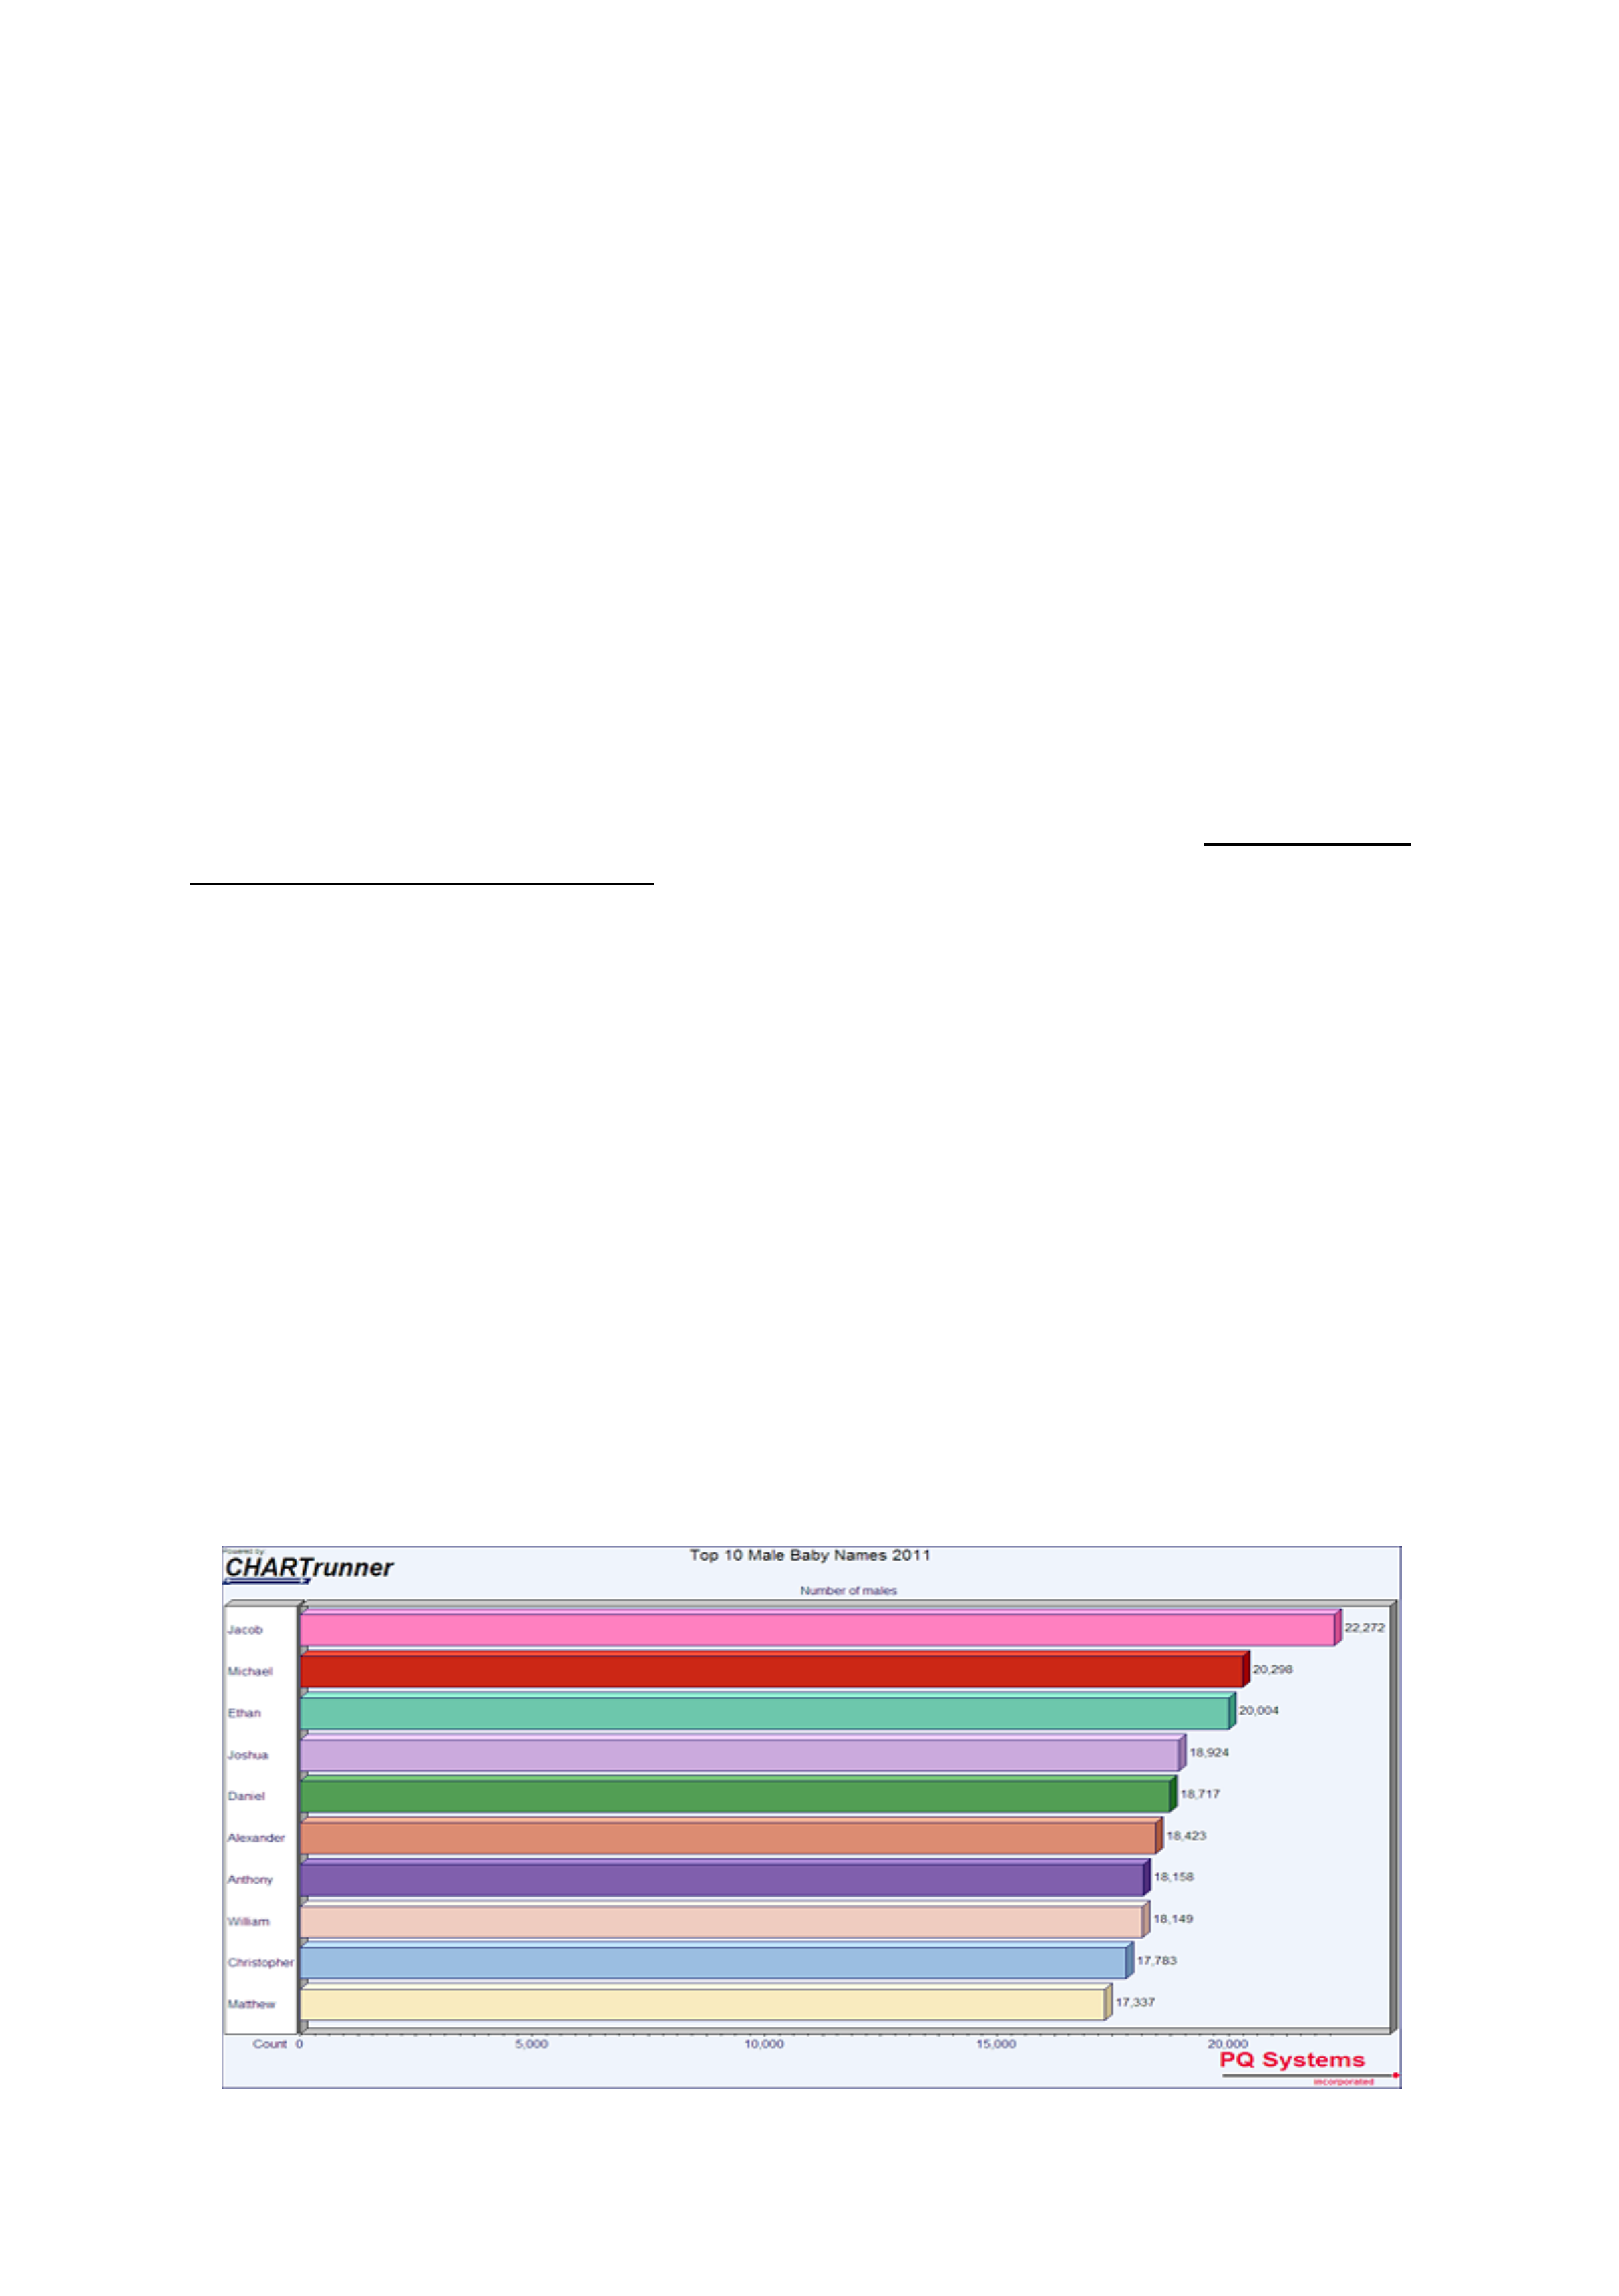 Pareto chart excel template free gallery templates example free pareto chart excel template free gallery templates example free chart pareto chart excel template marketing and nvjuhfo Gallery